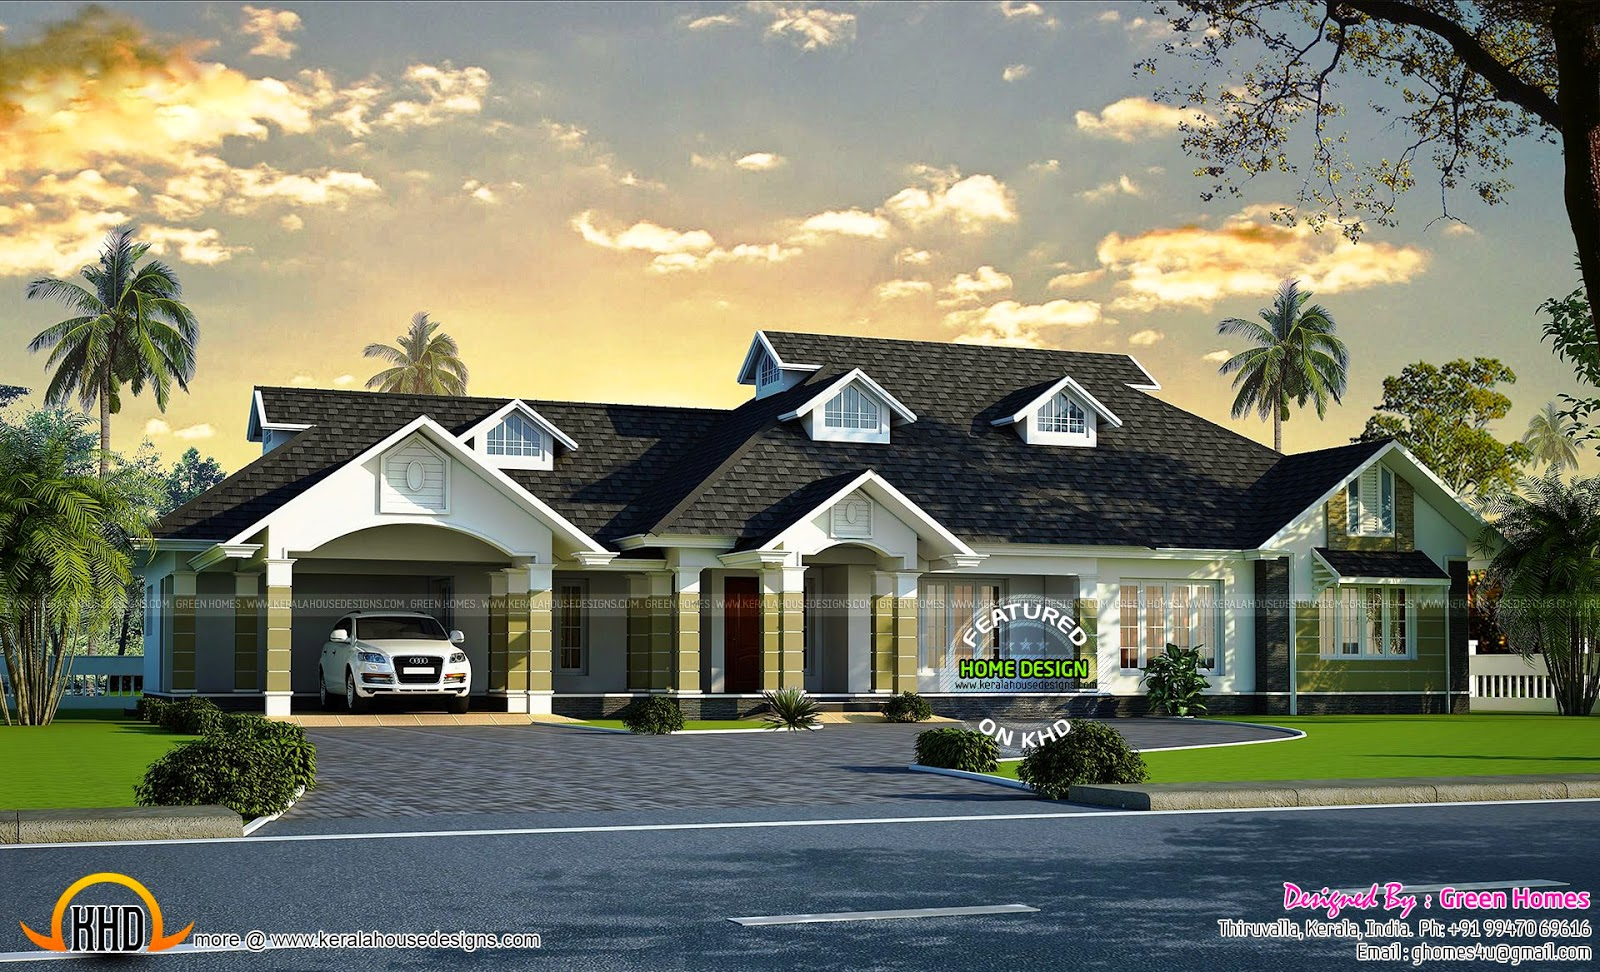 Designer bungalow exterior modern house for Luxury bungalow designs